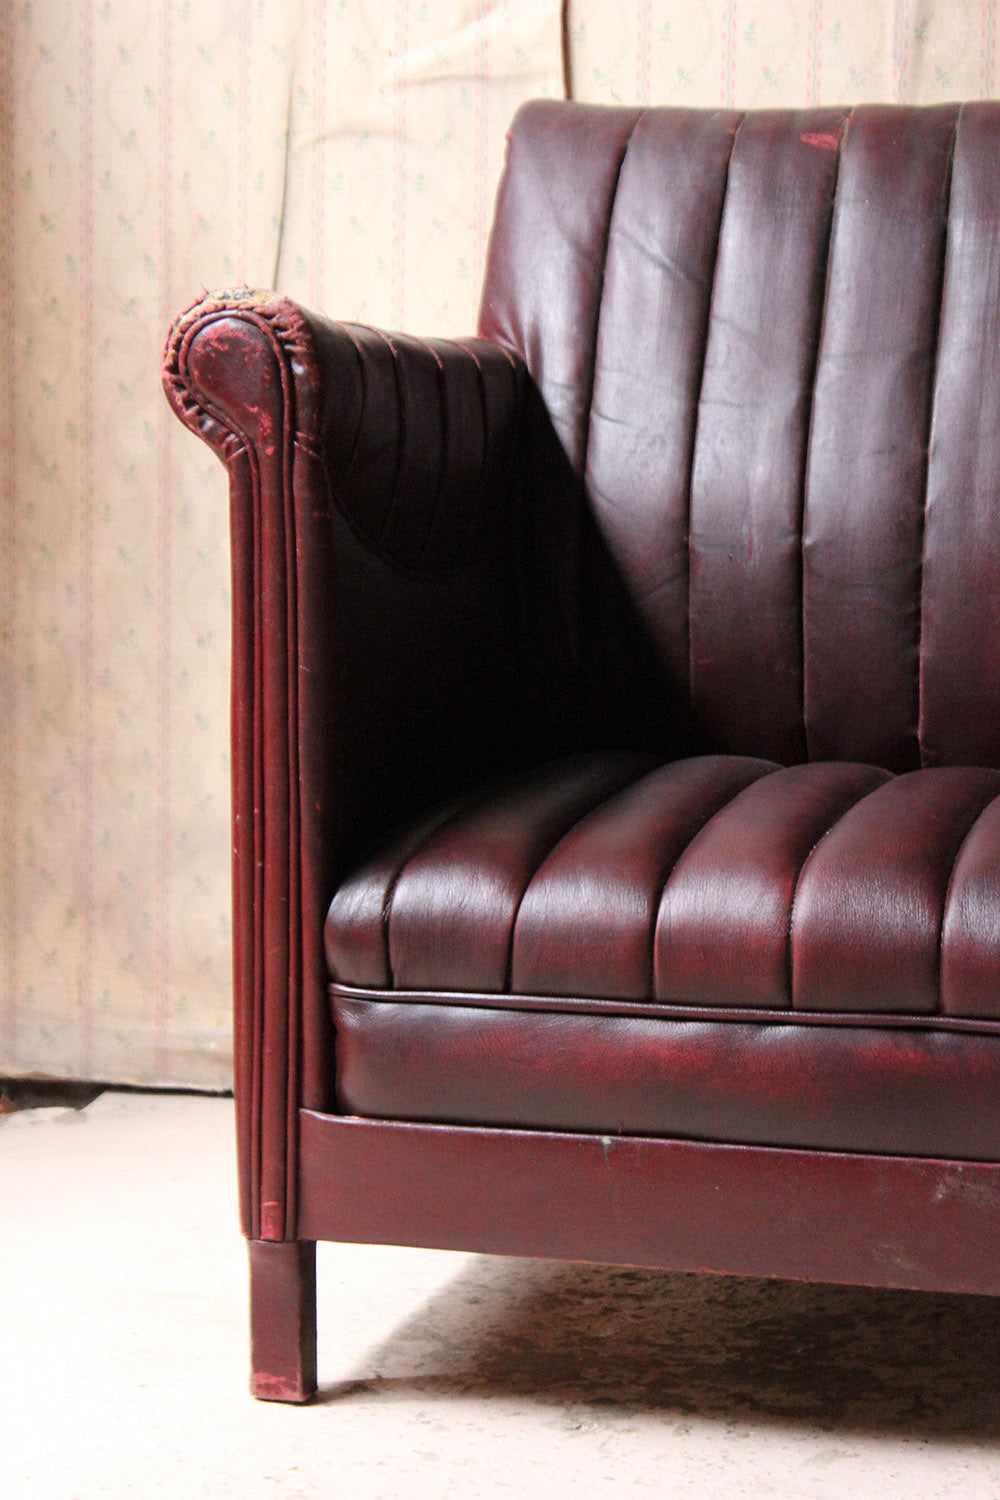 A Pair of French Modernist Burgundy Rexine & Leather Upholstered Armchairs c.1930-40